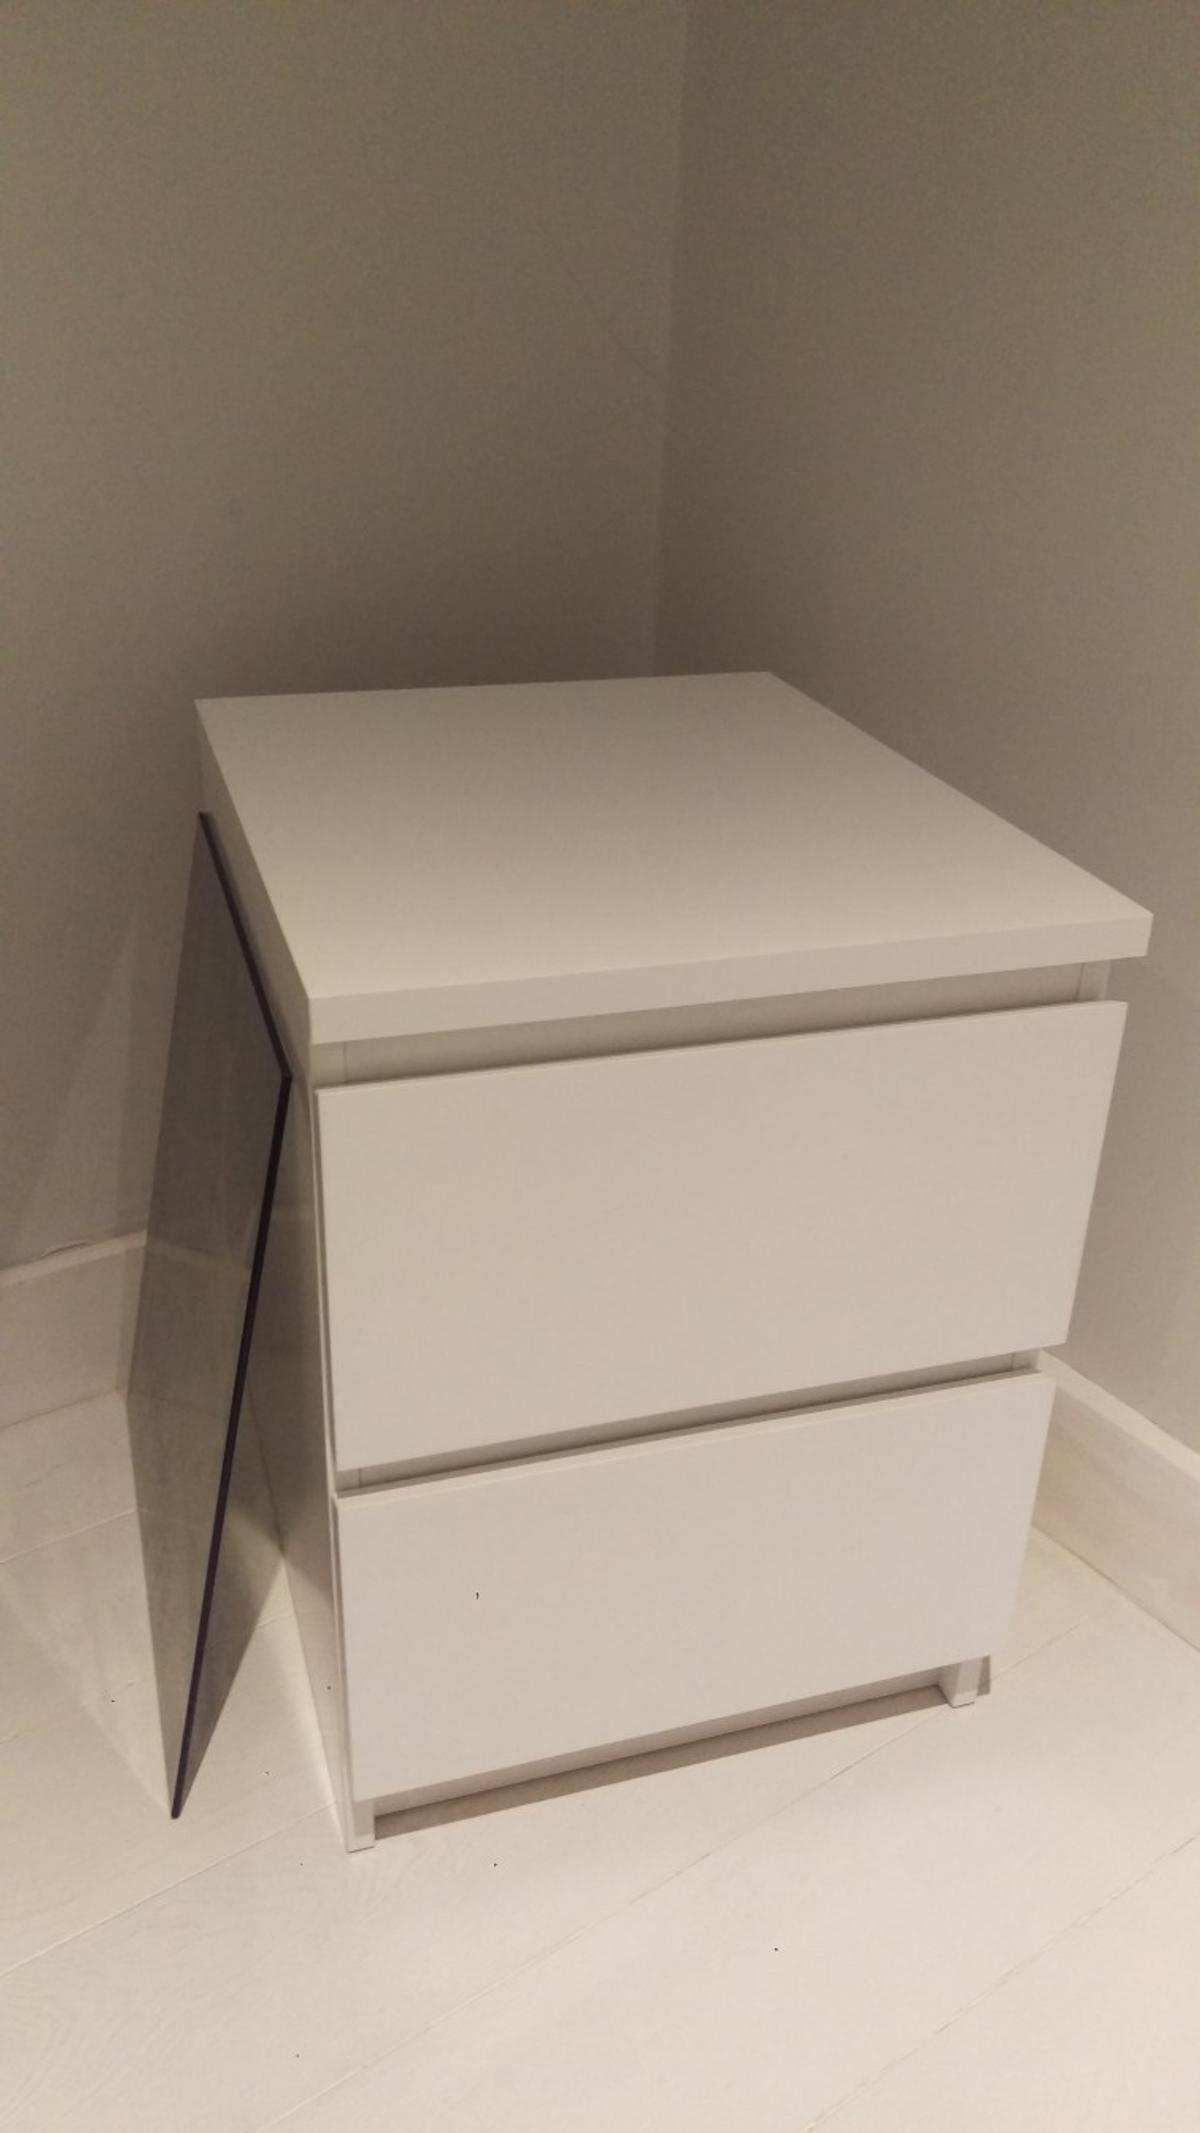 Ikea Malm 2 Draw Chest Bedside Table In E7 London For